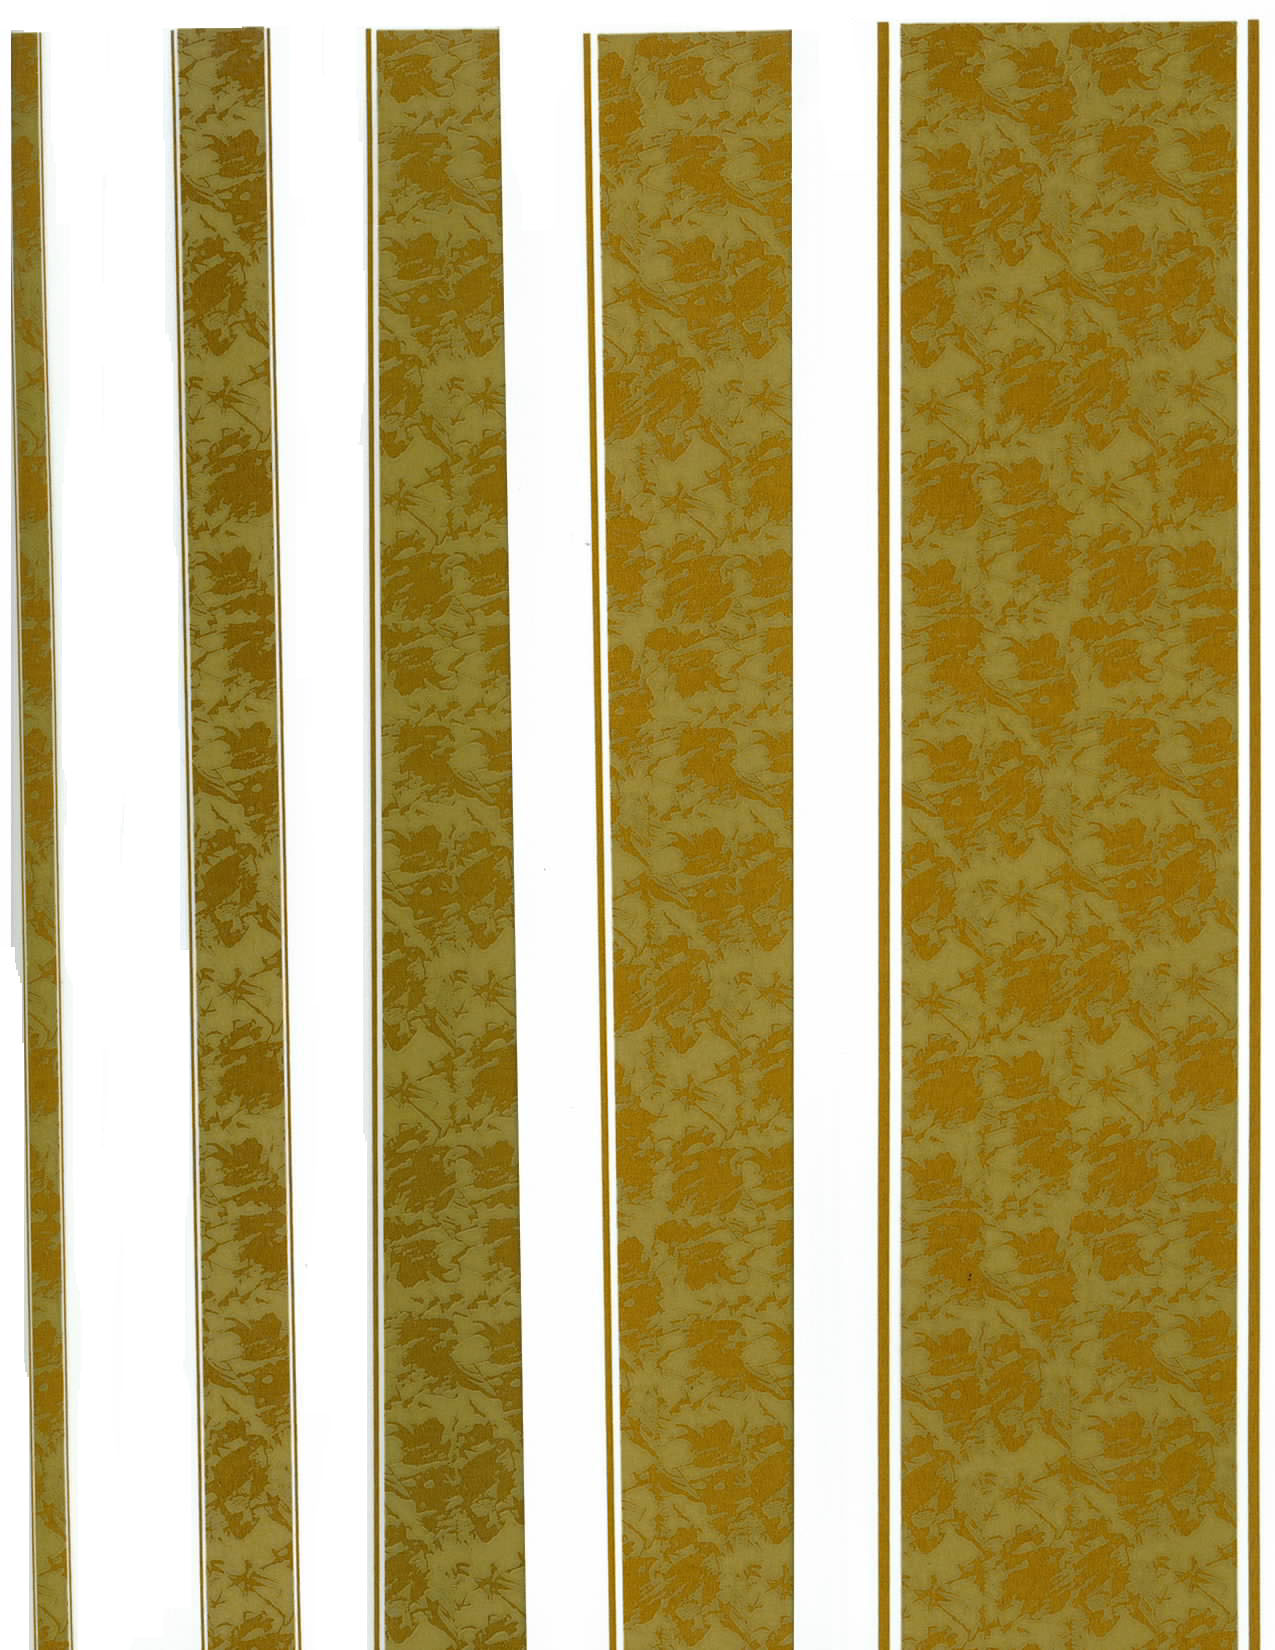 AG55853A SOLID GOLD BORDERS